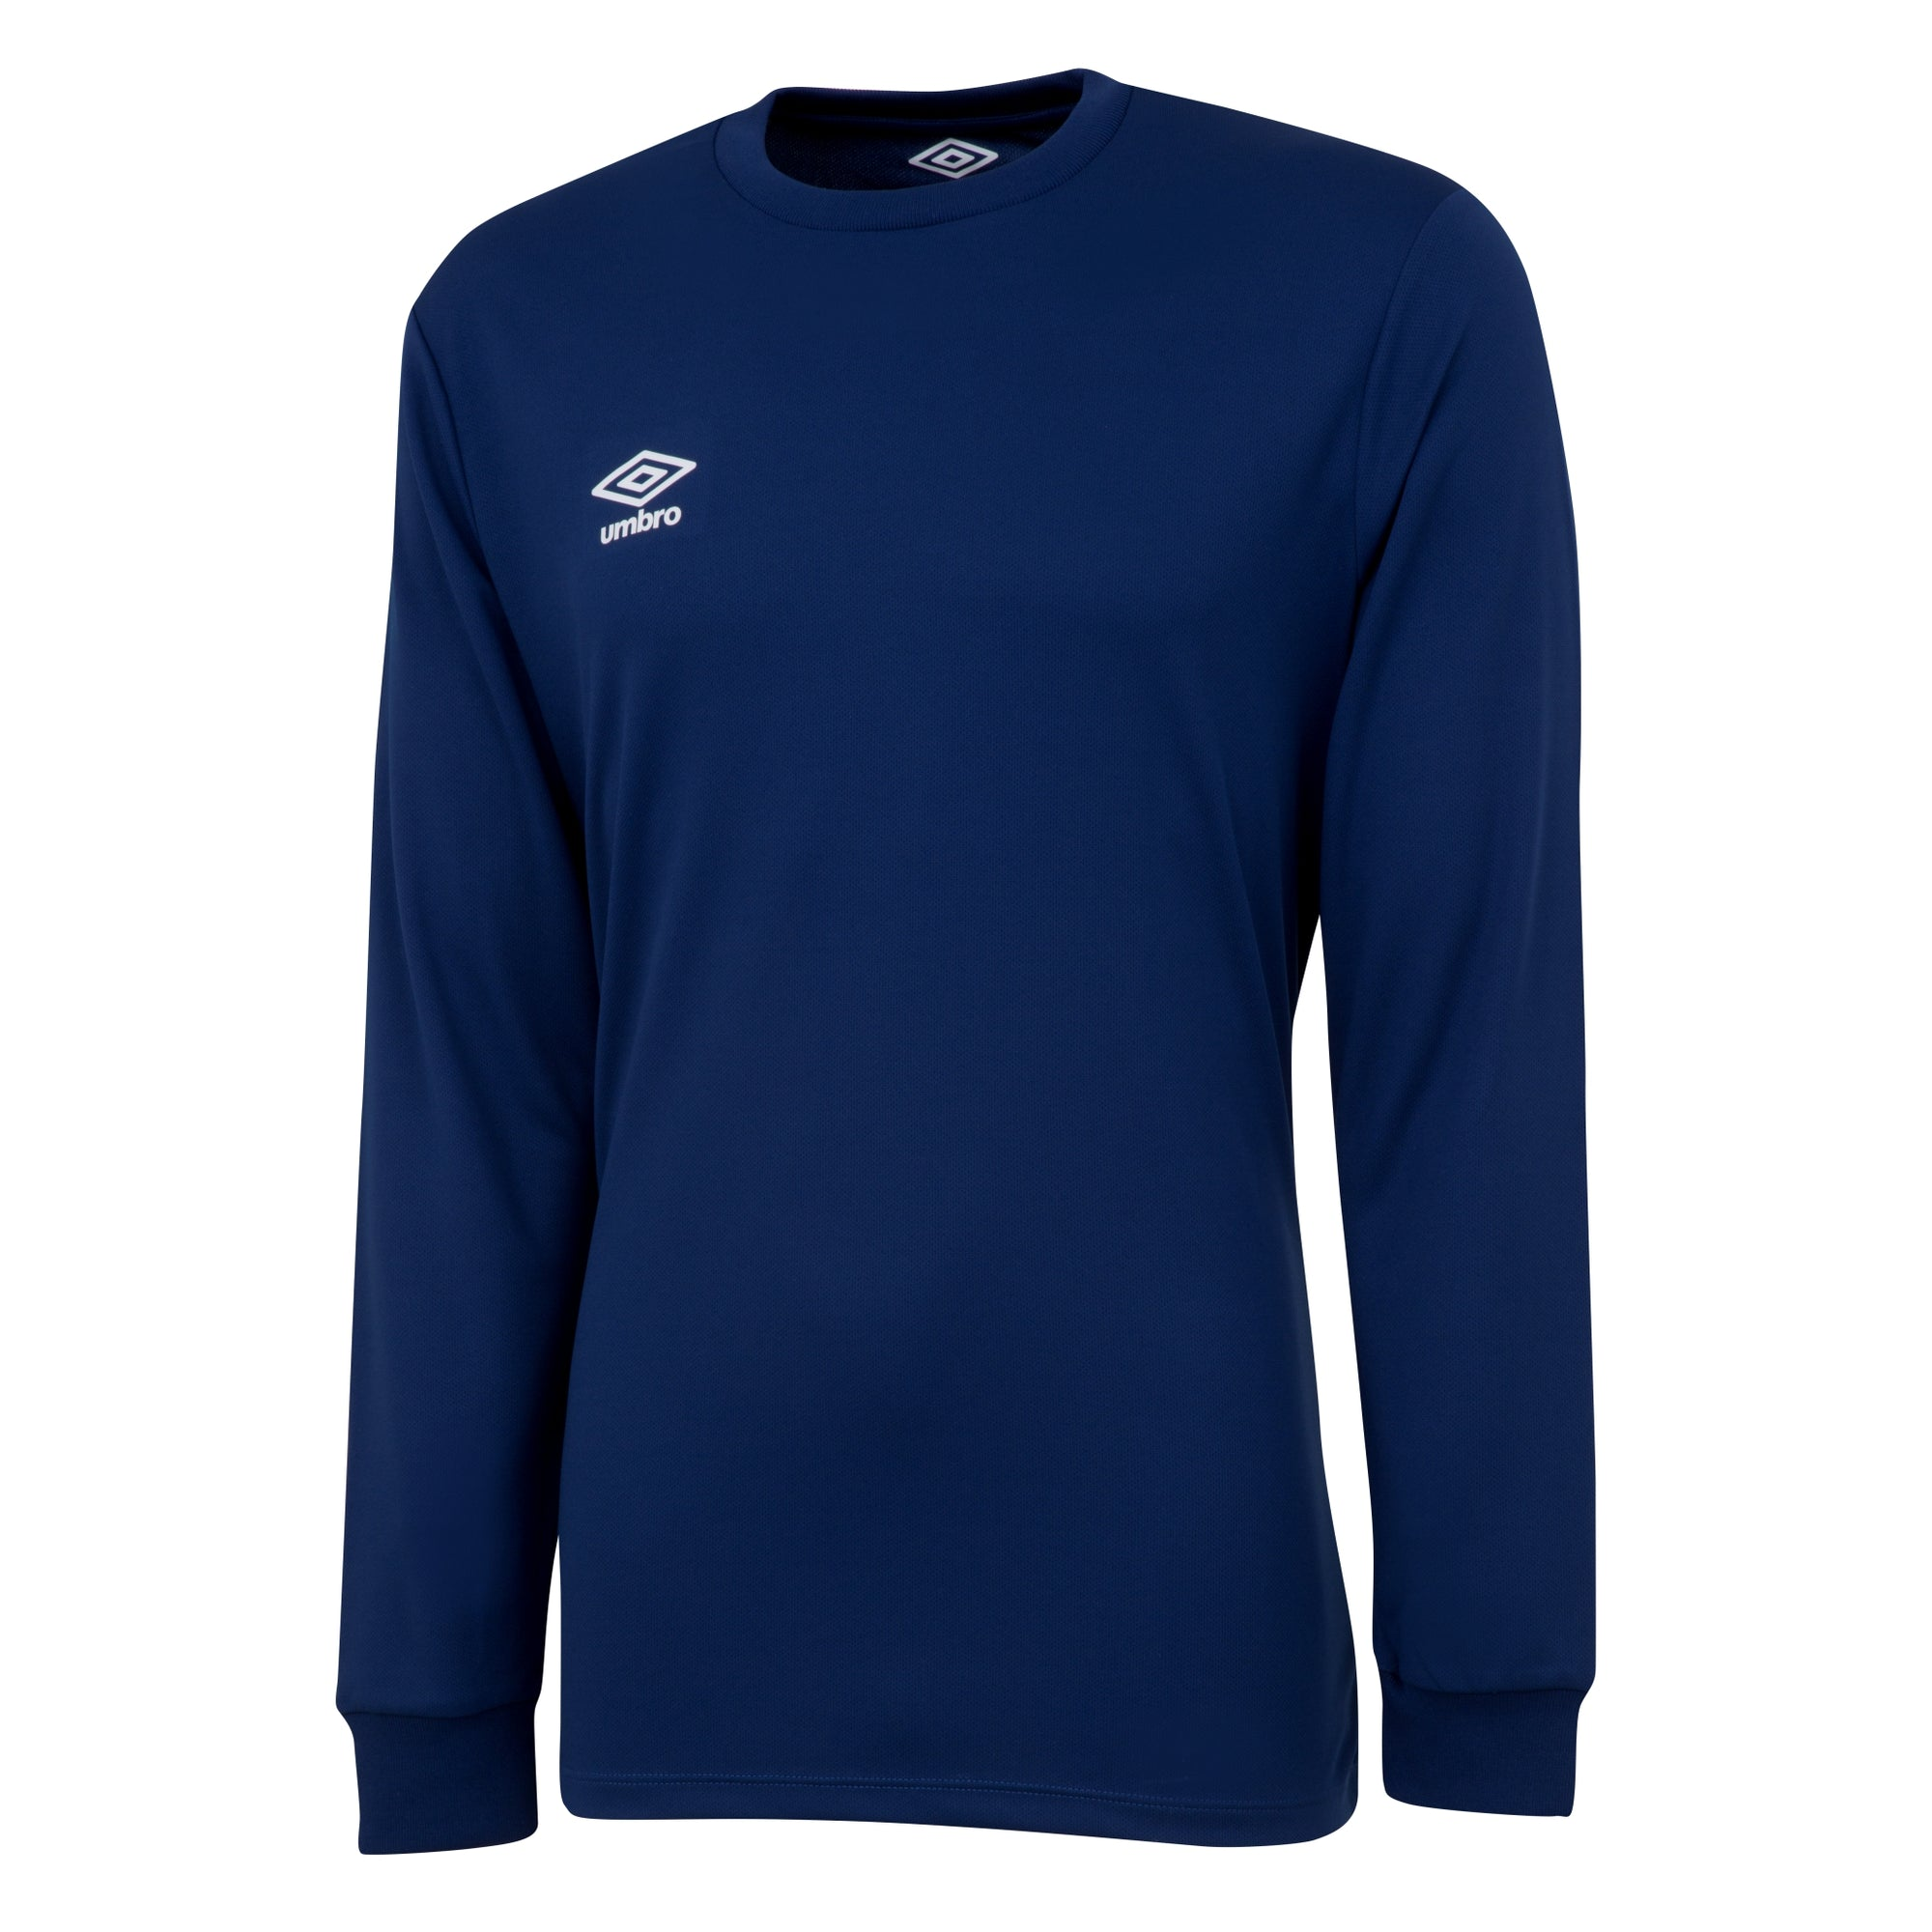 Umbro long sleeve club jersey in navy with white printed Umbro logo